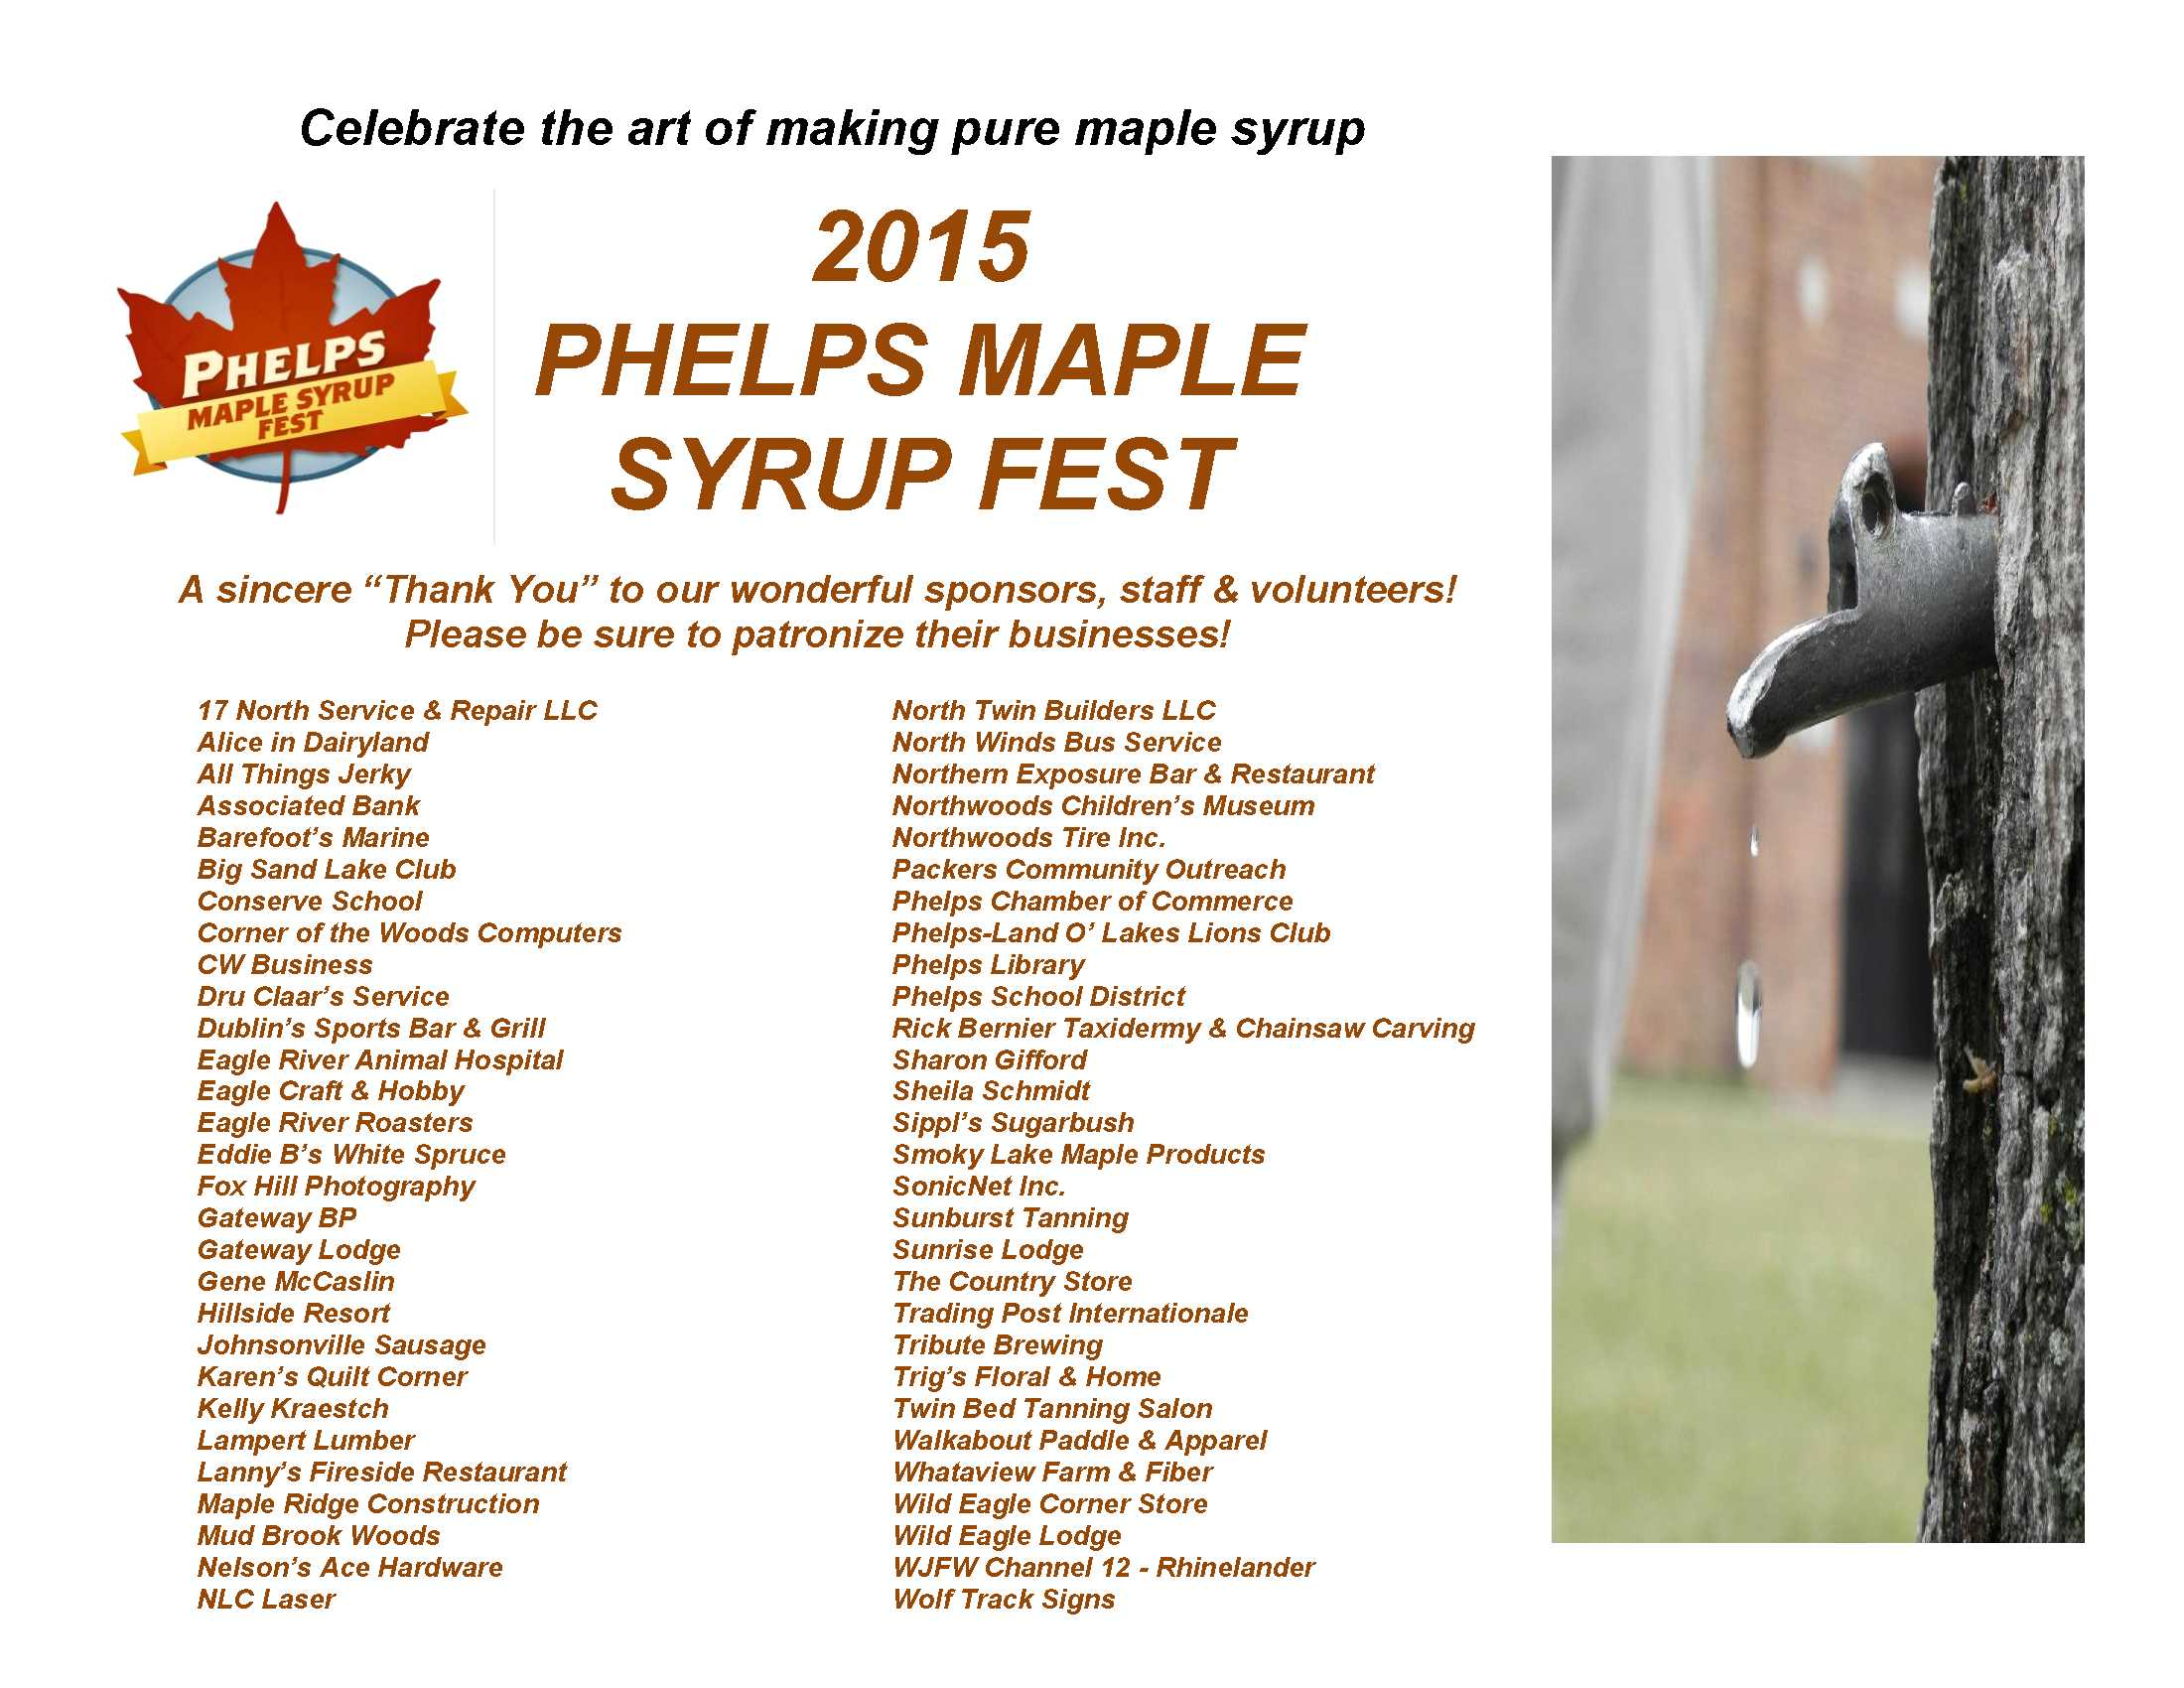 Maple Syrup Fest 2015 Sponsors